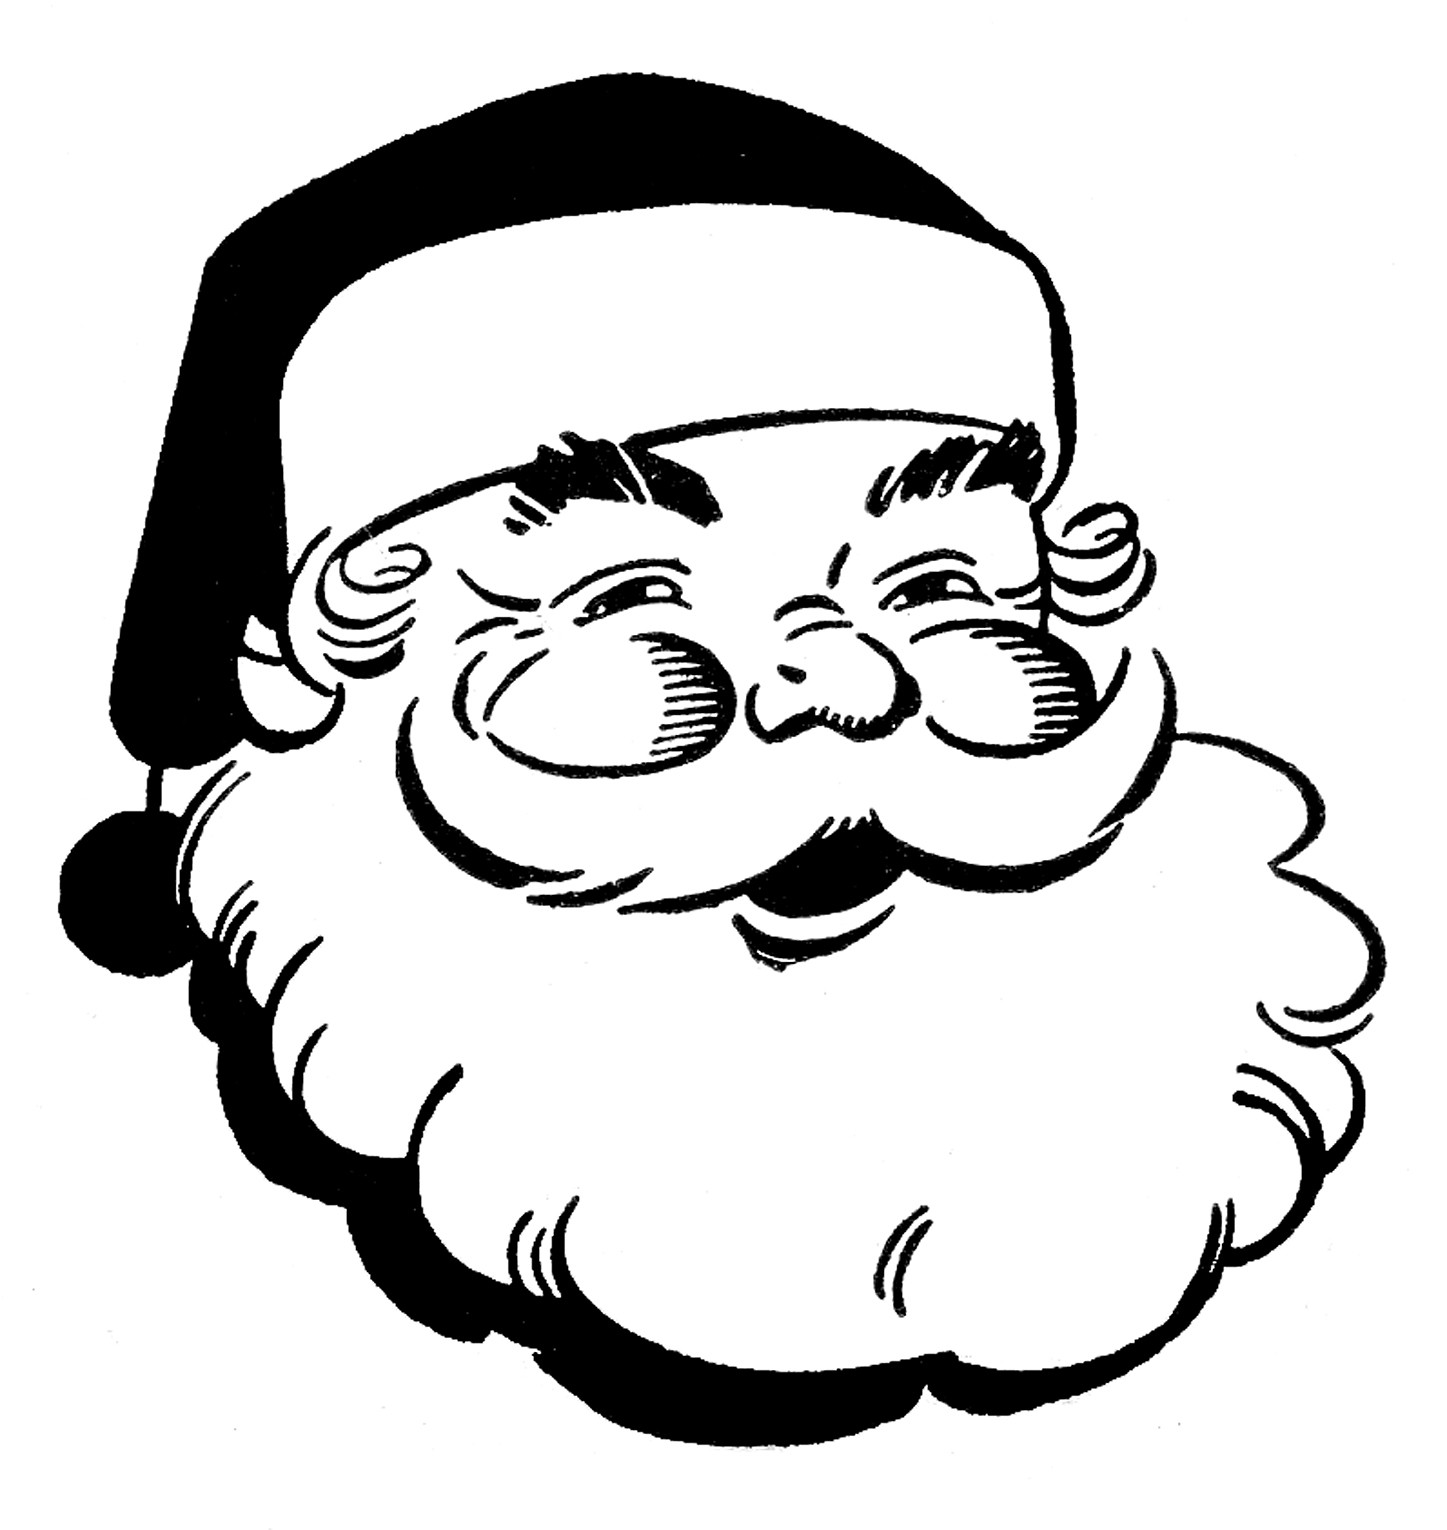 Marvelous Christmas Clipart Black And White Free Look At Clip Art Download Free Architecture Designs Scobabritishbridgeorg